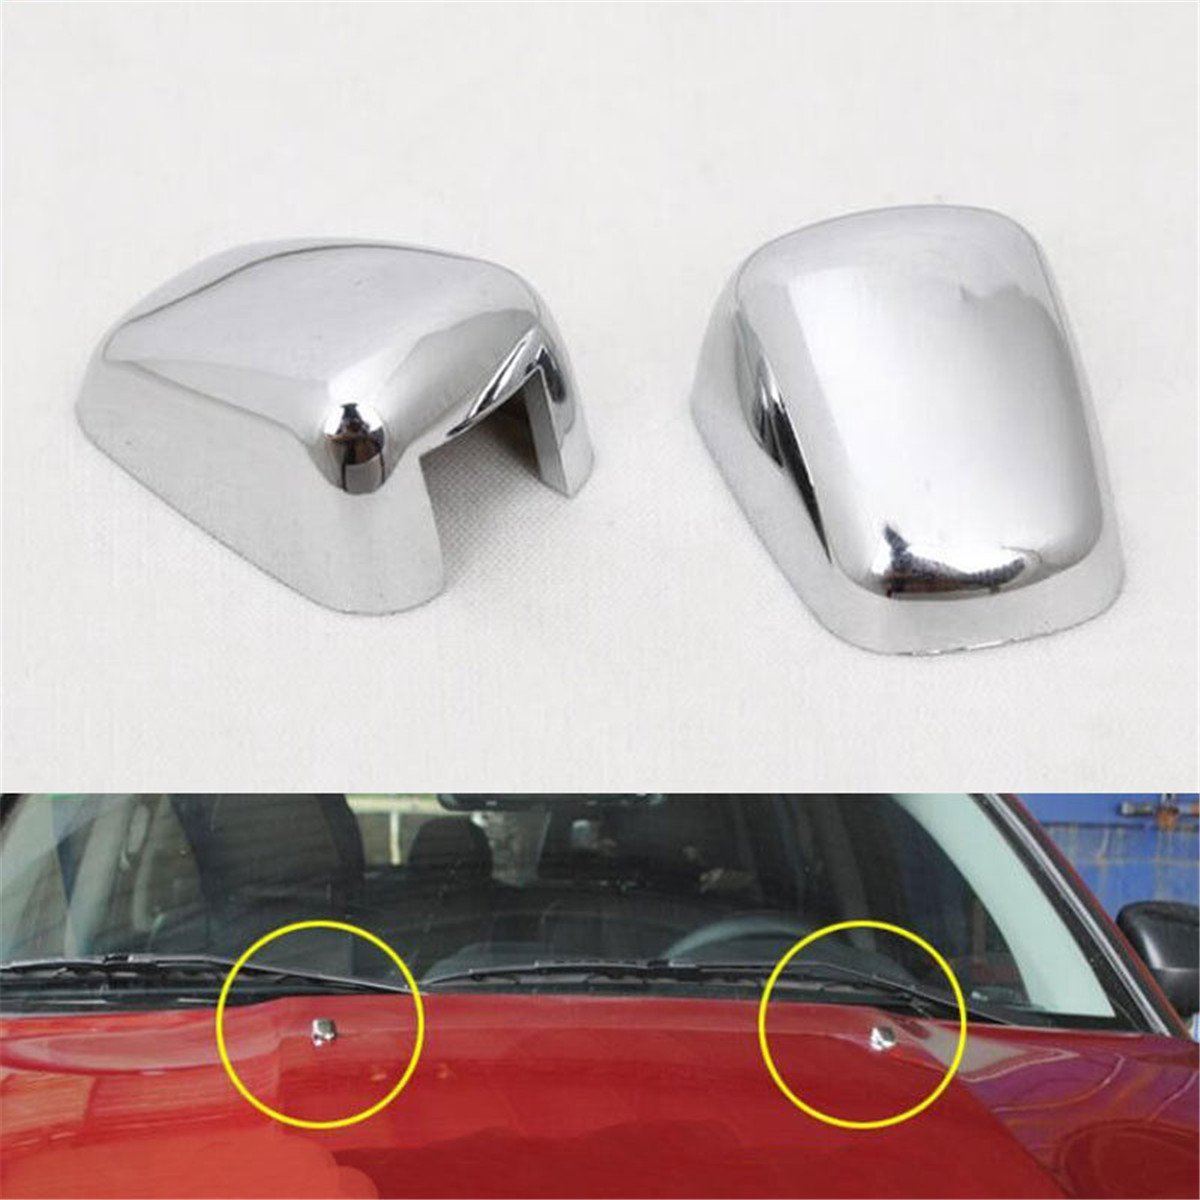 FMtoppeak Silver 2pcs Front Windshield Washer Wiper Spray Nozzle Trim Cover for 2007-2016 Jeep Compass/Patriot/Grand Cherokee/Cherokee